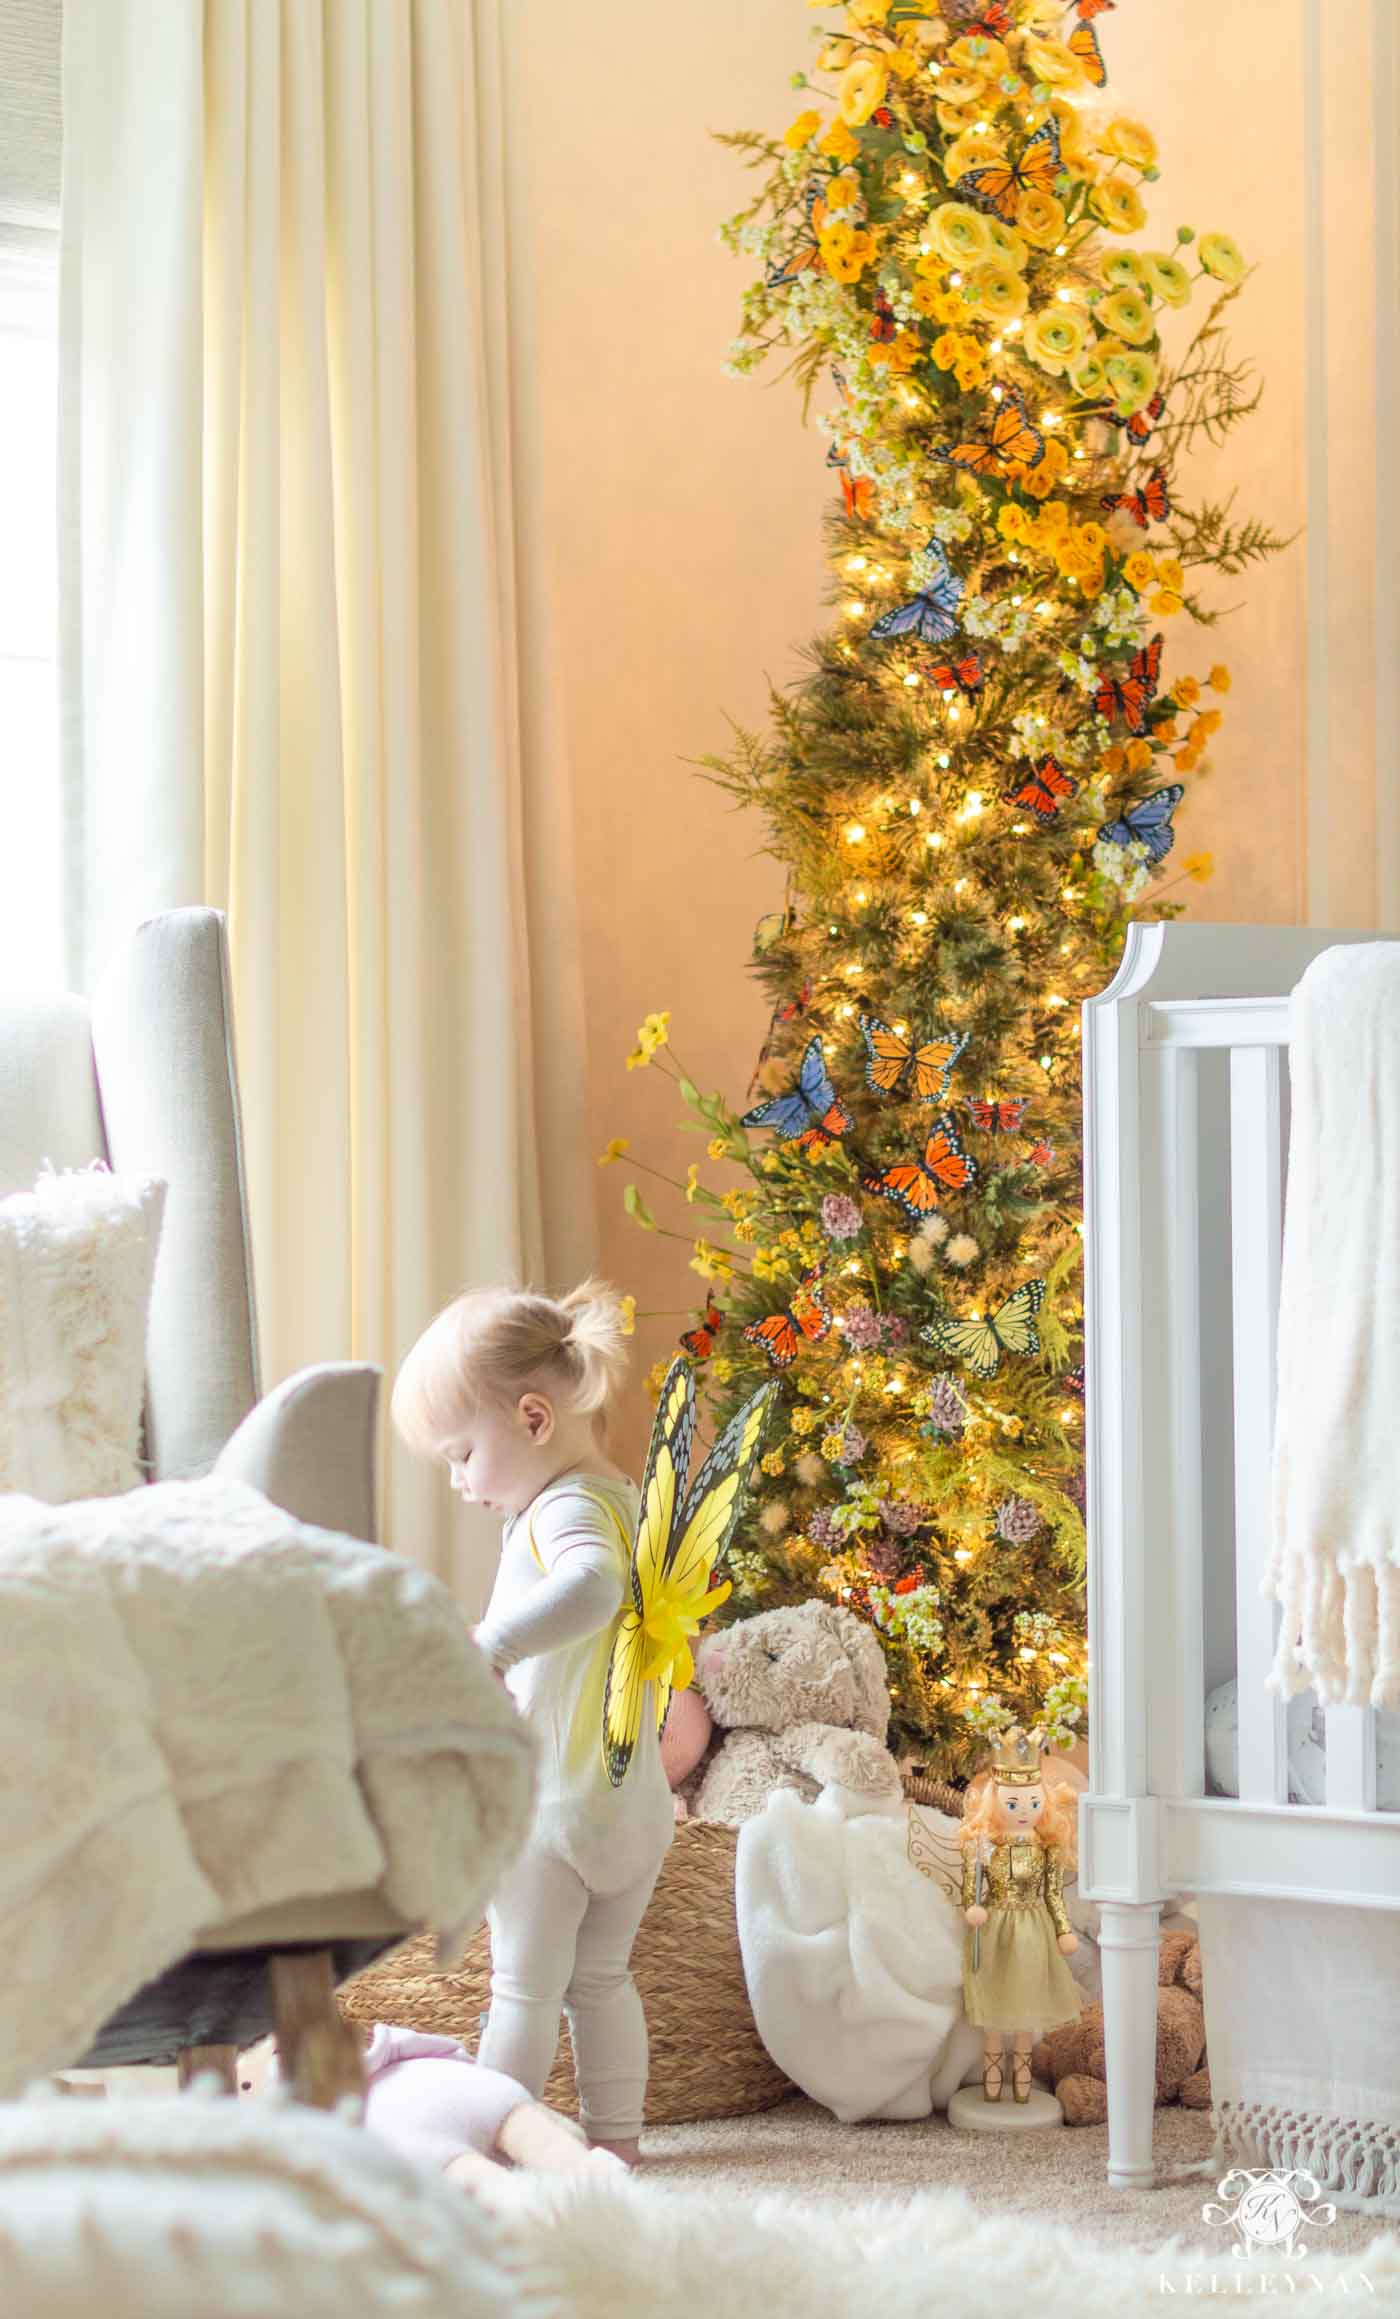 Kids Christmas Bedroom with a Butterfly and Flower Christmas Tree